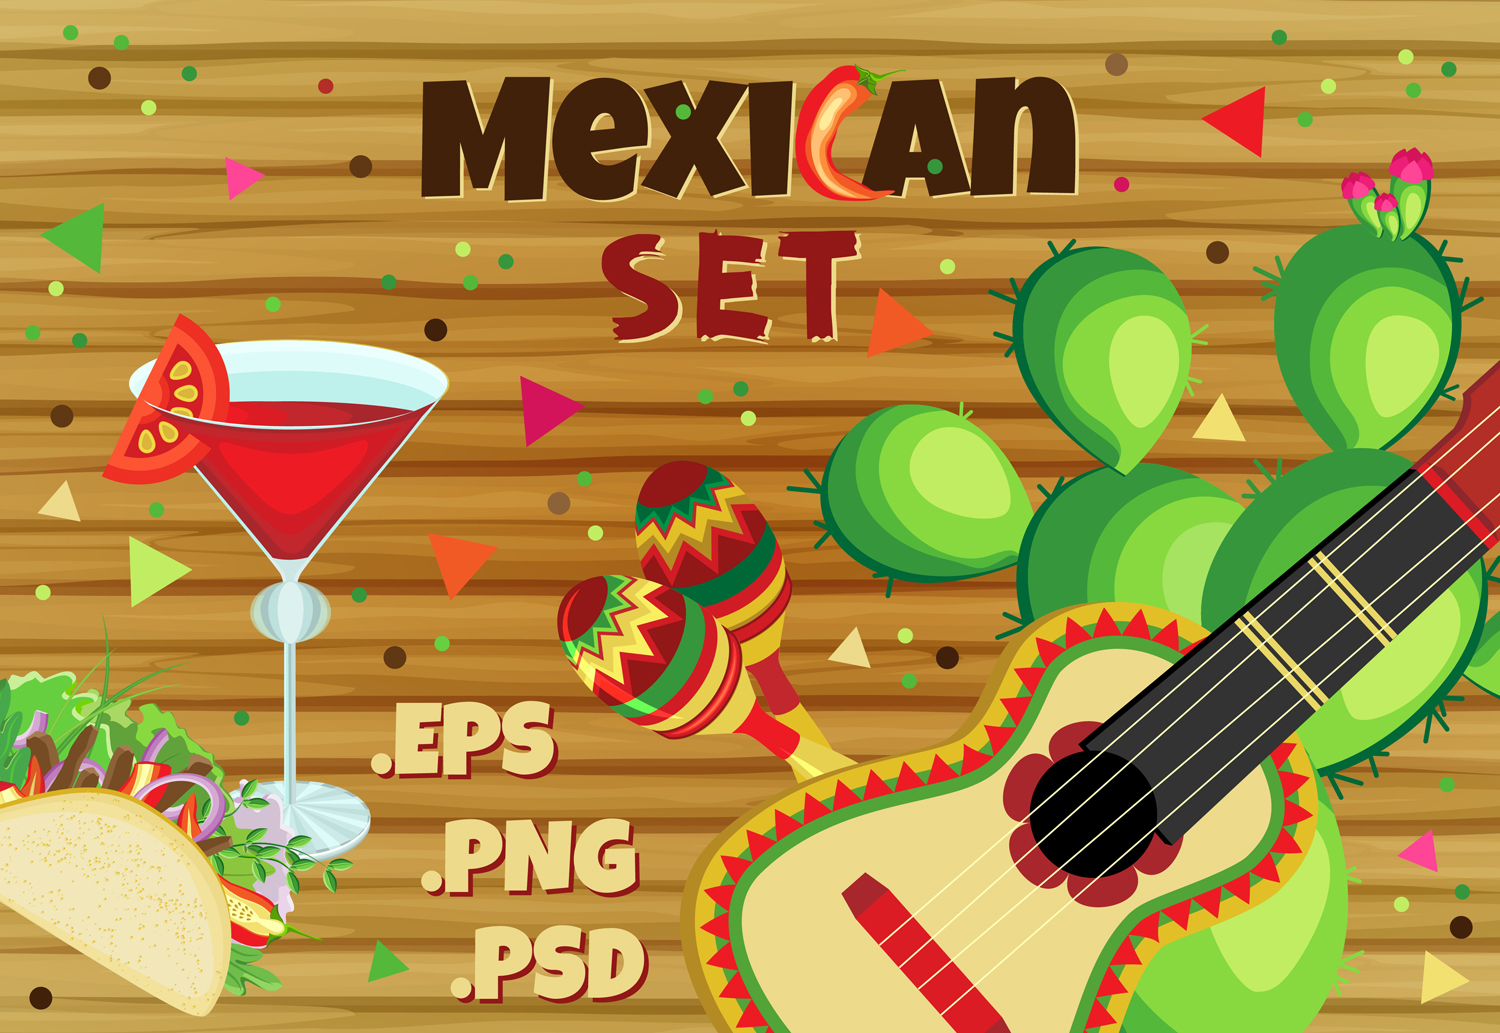 Cinko de Mayo holiday set example image 1